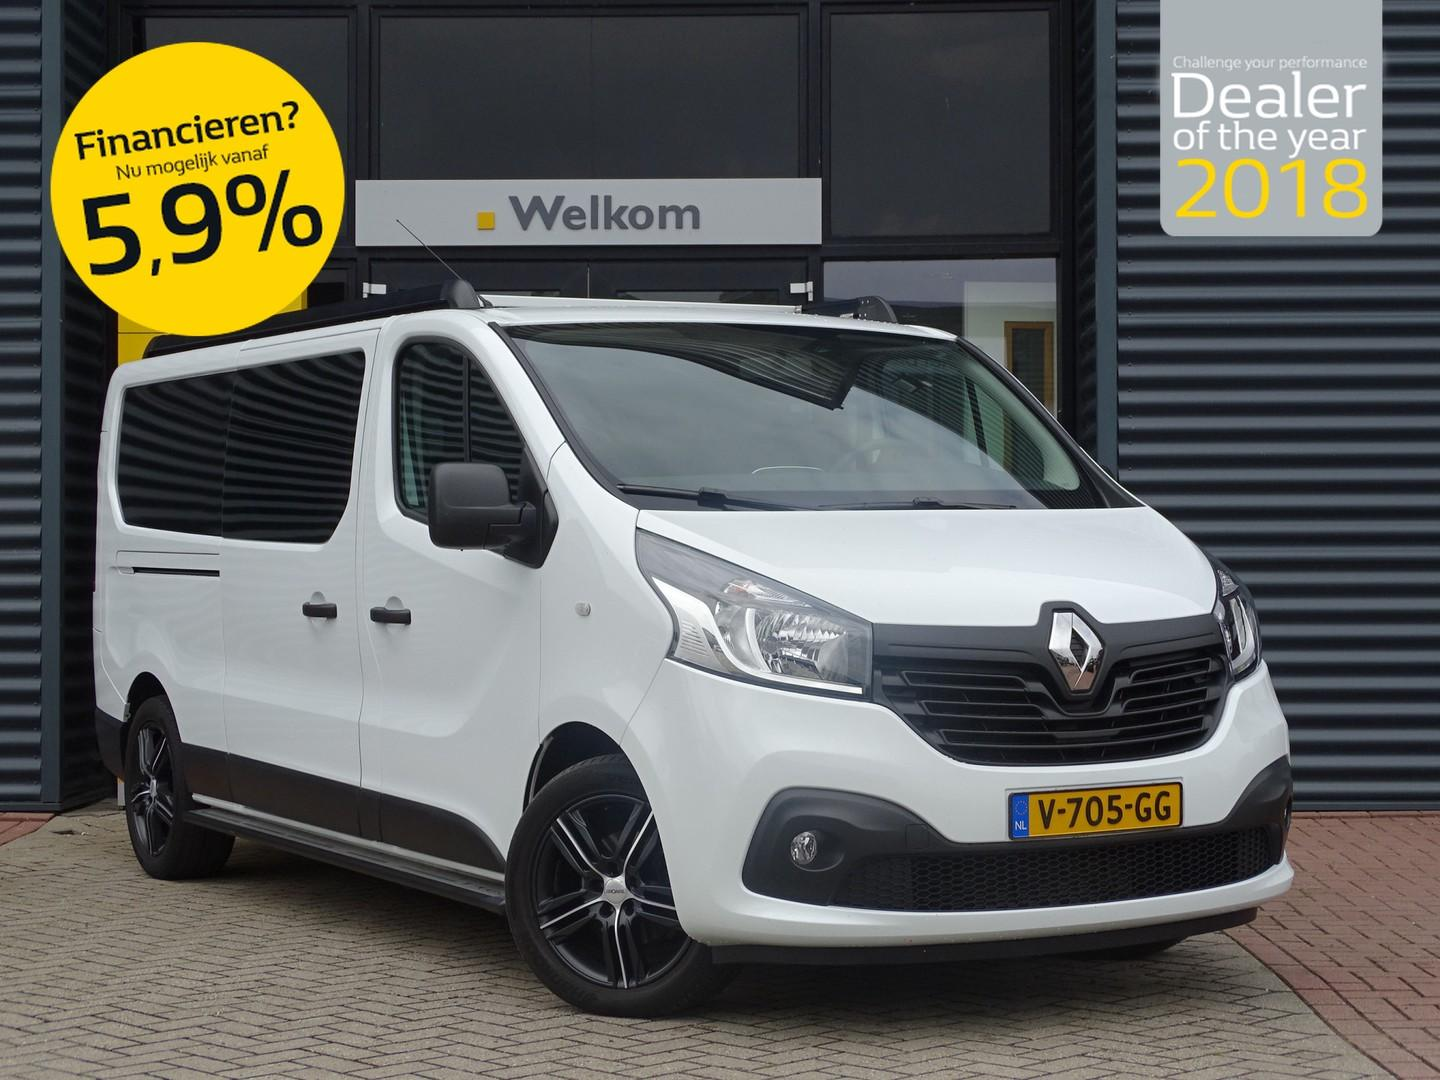 Renault Trafic 1.6 dci 125pk l2h1 dubbele cabine comfort